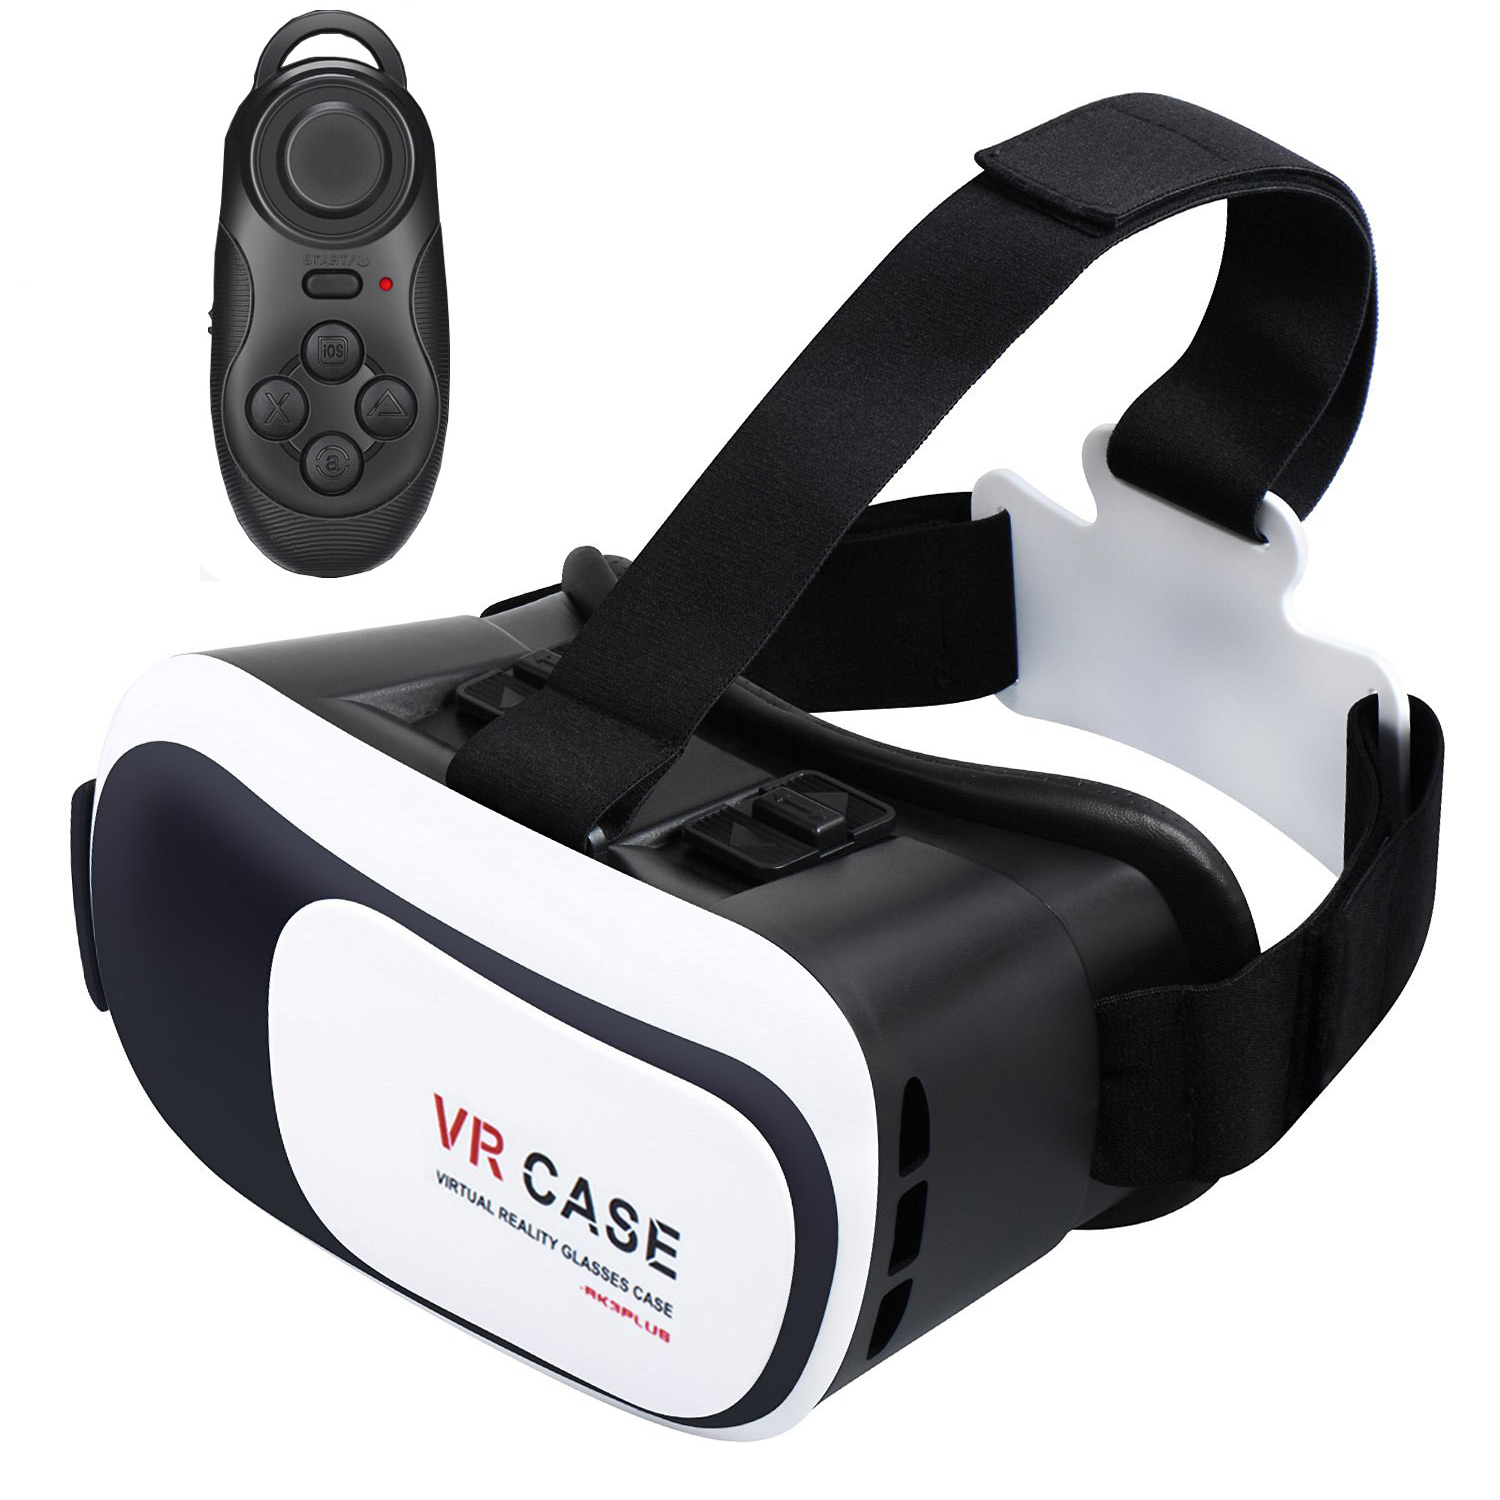 TekDeals Virtual Reality 3D Glasses Headset With bluetoot h Remote VR Goggle for 4-6 inches Smartphone iPhone Samsung Moto LG Nexus HTC, Black/White